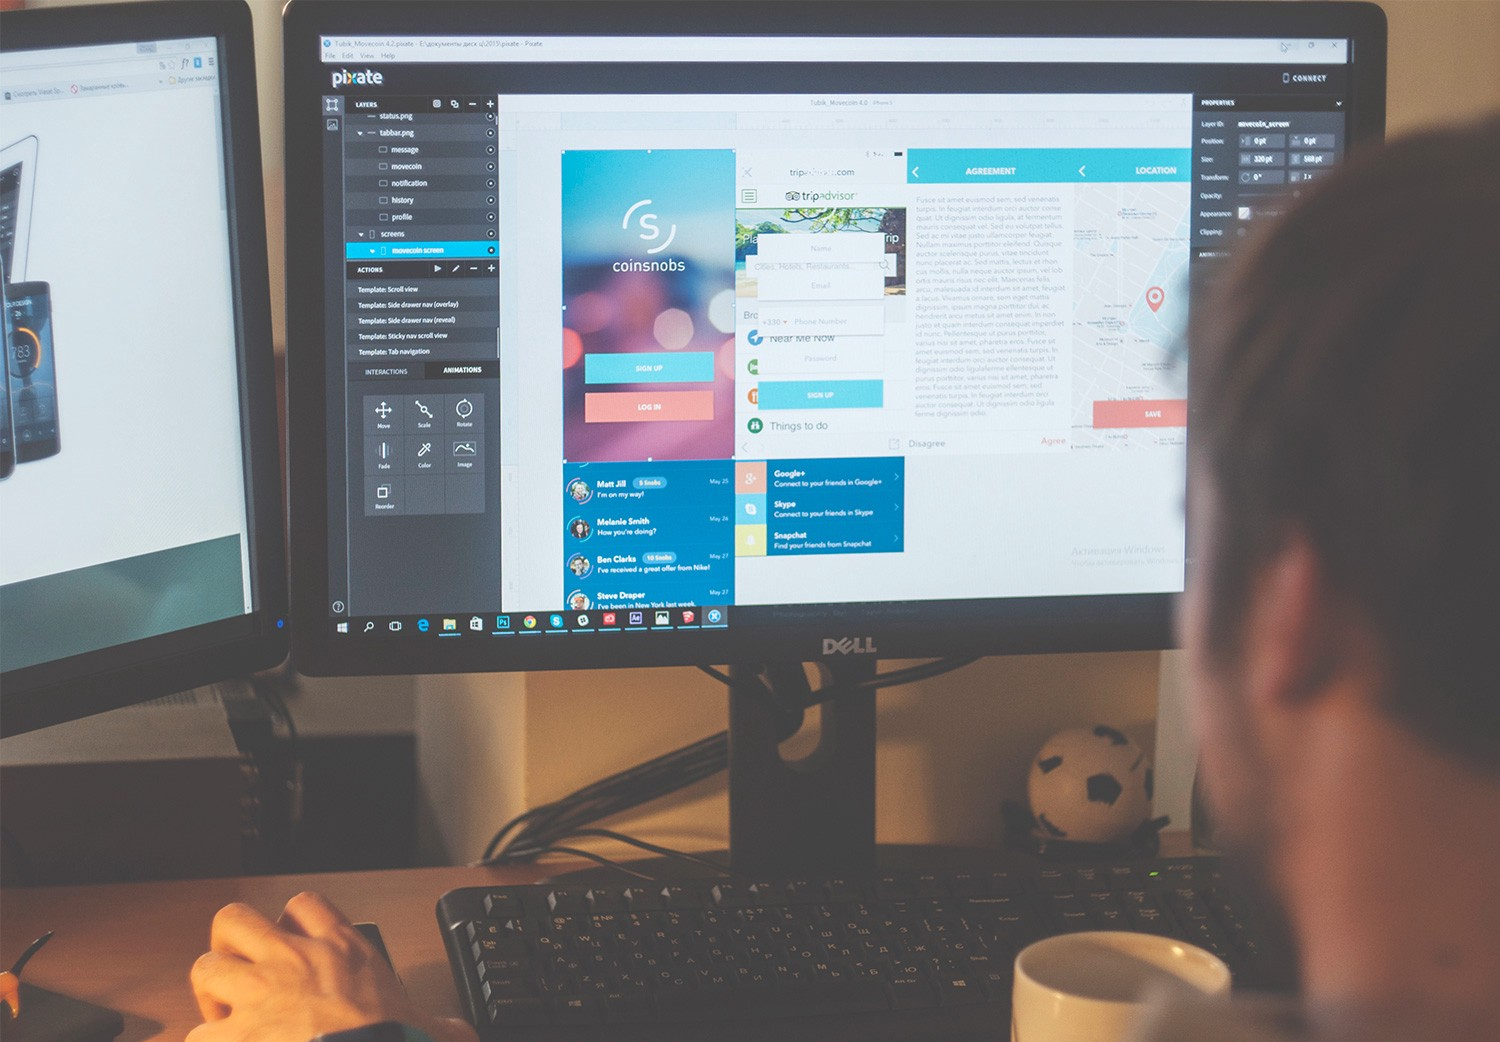 Benefits of prototyping for UX design with Pixate